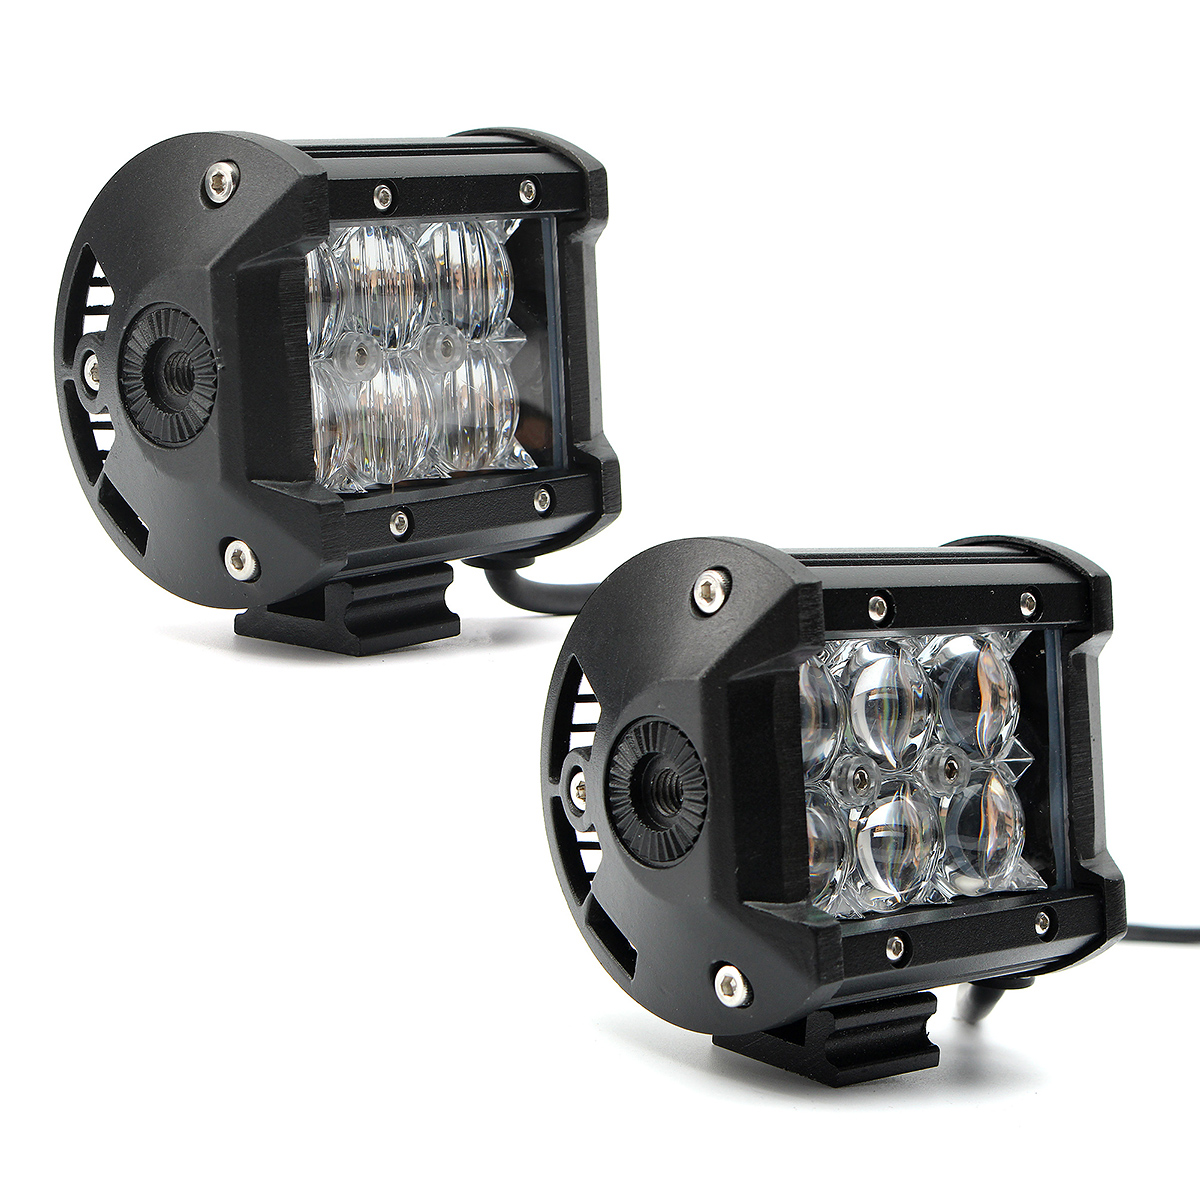 DC12-24V 18W 4inch 5D Lens Flood/Spot Beam Off Road LED Light Bars for Jeep SUV Car Truck